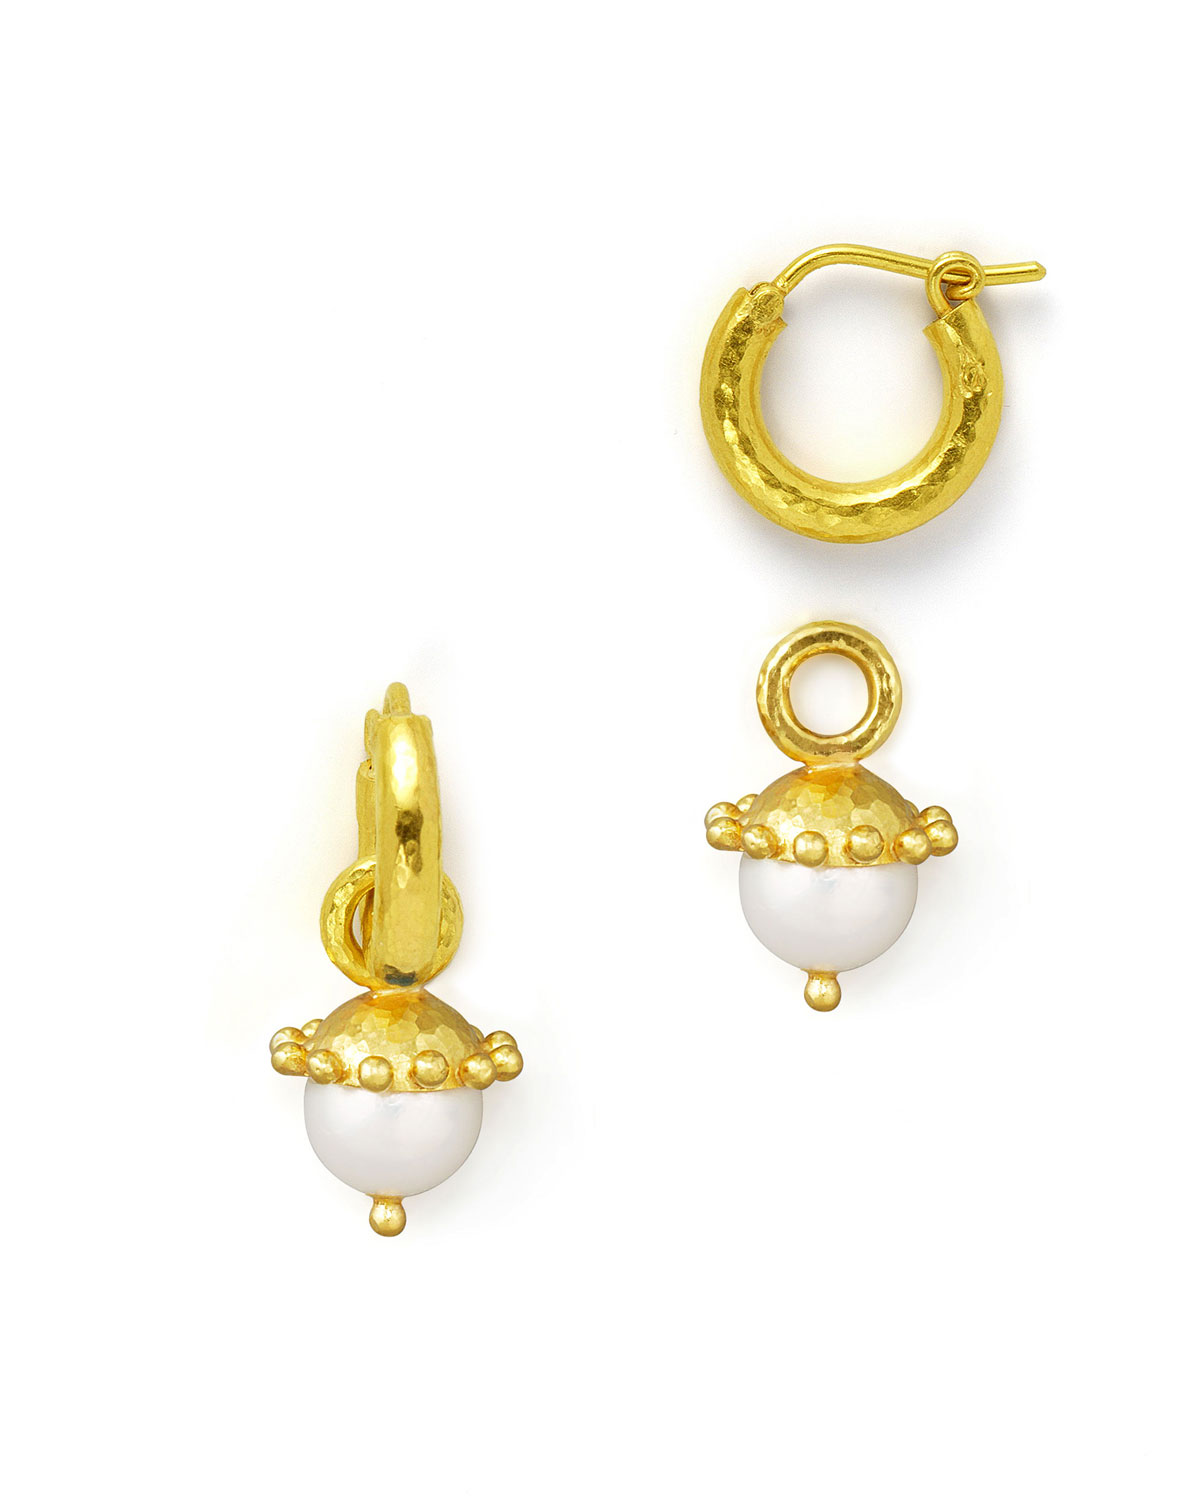 Elizabeth Locke White Pearl Earring Pendants